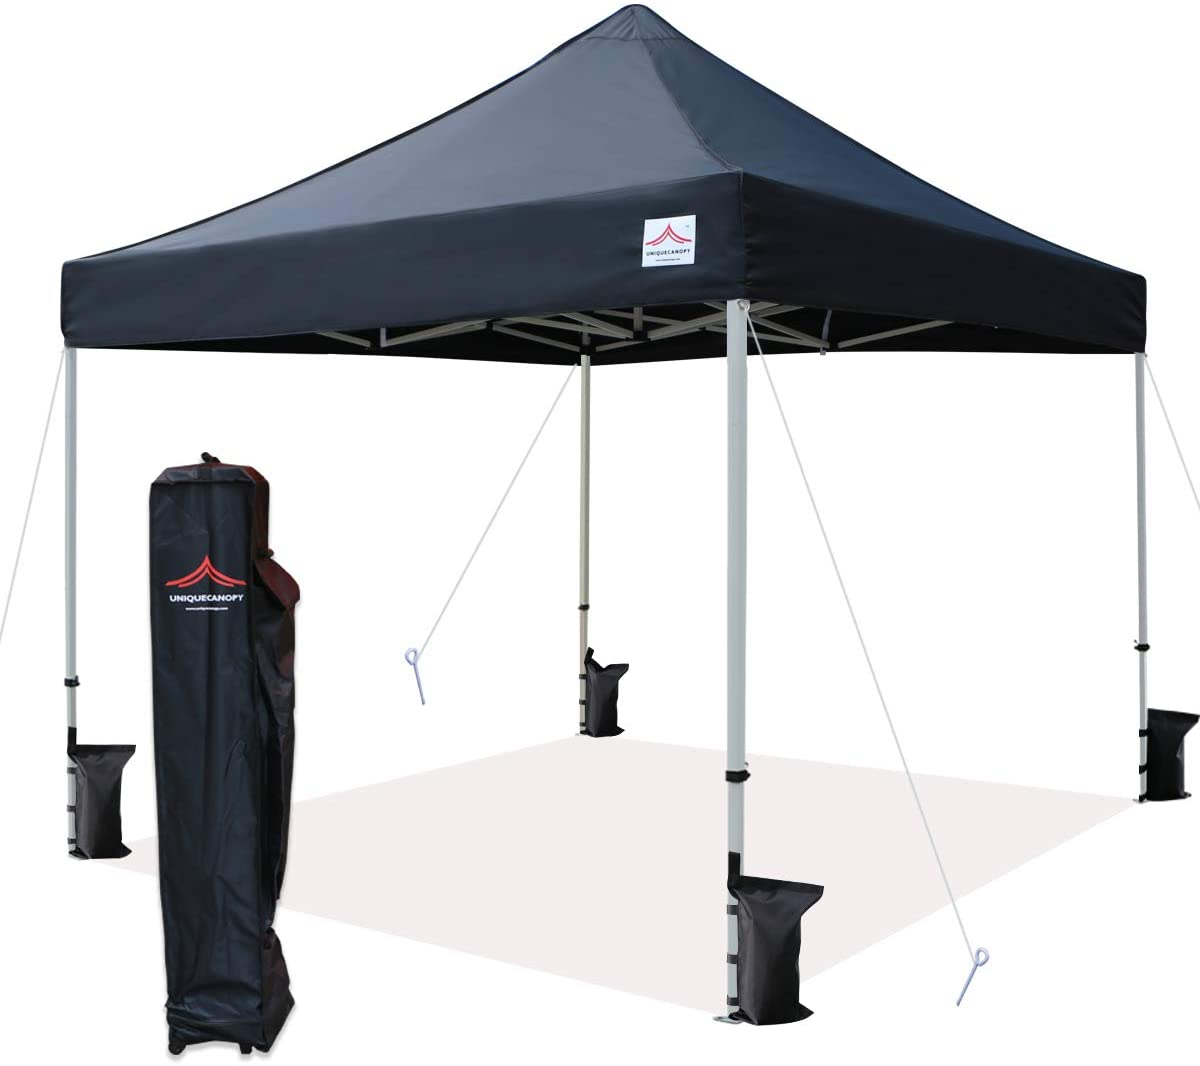 UNIQUECANOPY 10'x10' Ez Pop Up Canopy Tent Commercial Instant Shelter with Heavy Duty Roller Bag, 4 Canopy Sand Bags, 10x10 FT Black